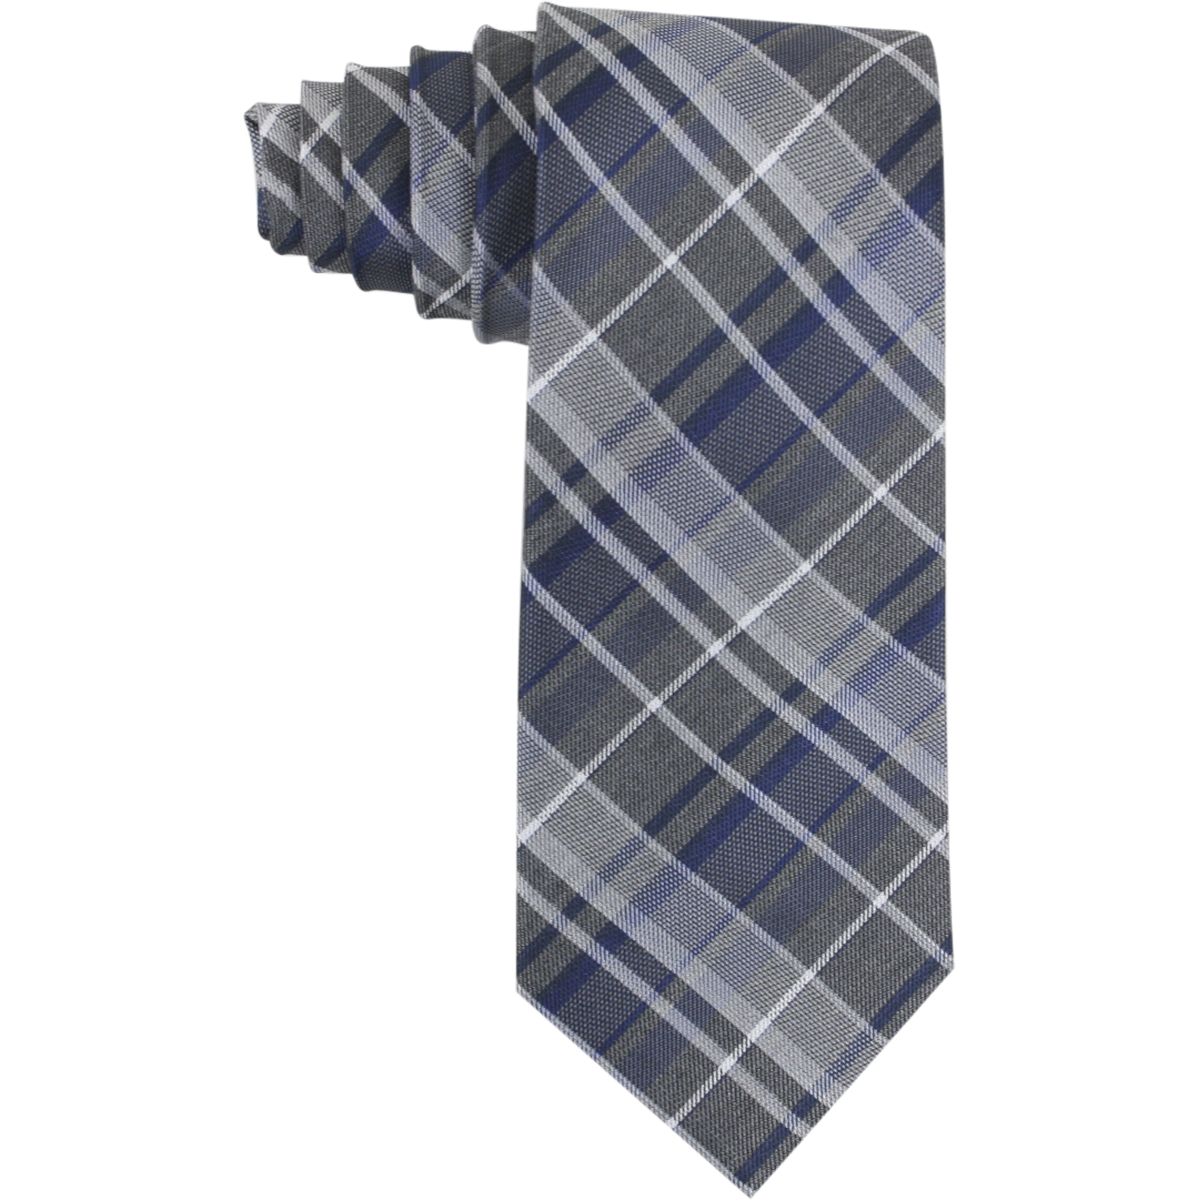 Image of Calvin Klein Men's Graphite Schoolboy Plaid Tie - Blue - 3 Inch